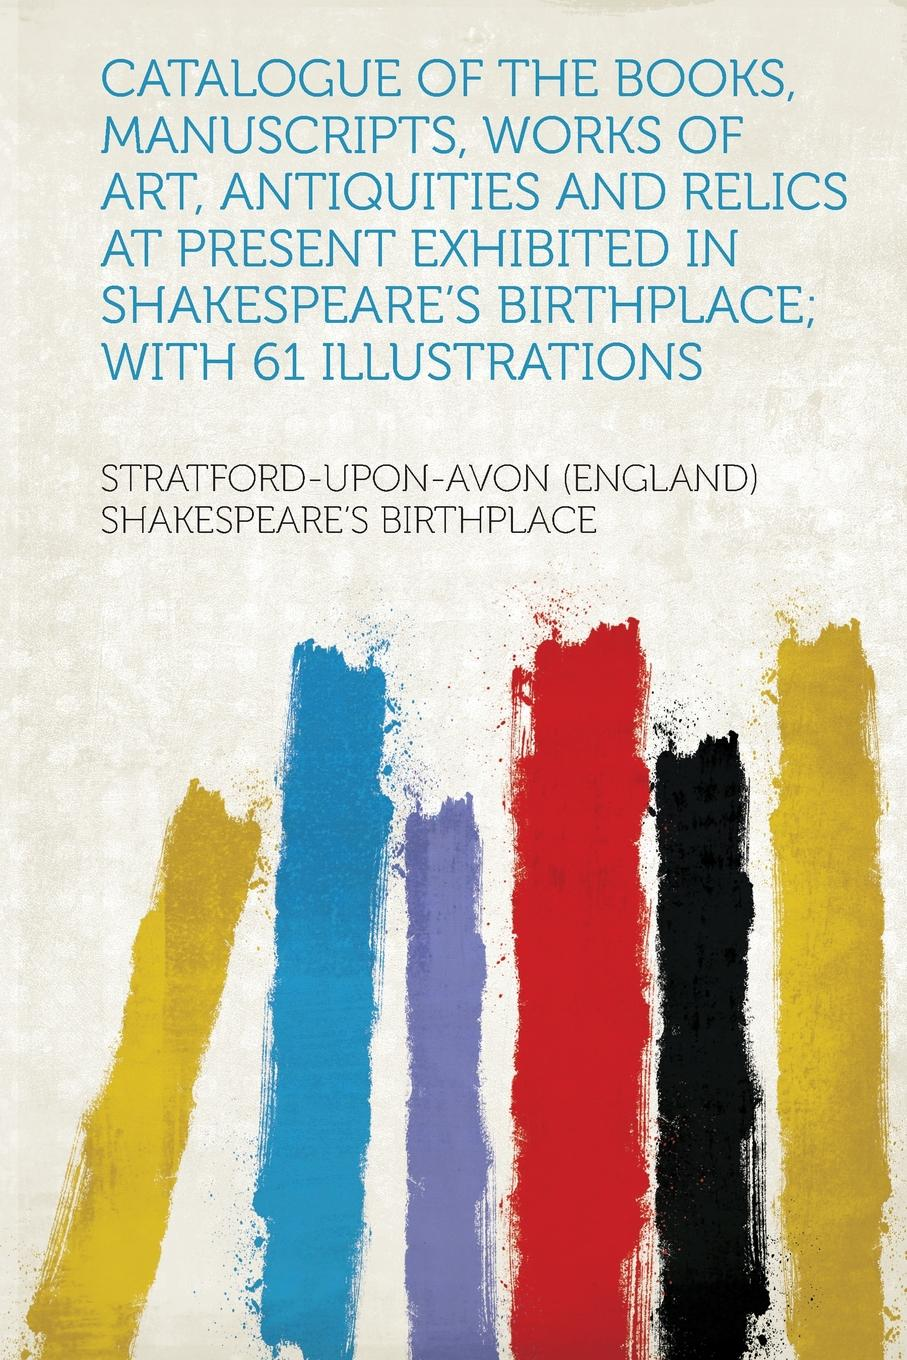 Stratford-upon-Avon (England birthplace Catalogue of the Books, Manuscripts, Works of Art, Antiquities and Relics at Present Exhibited in Shakespeare.s Birthplace; With 61 Illustrations letter print camo tee